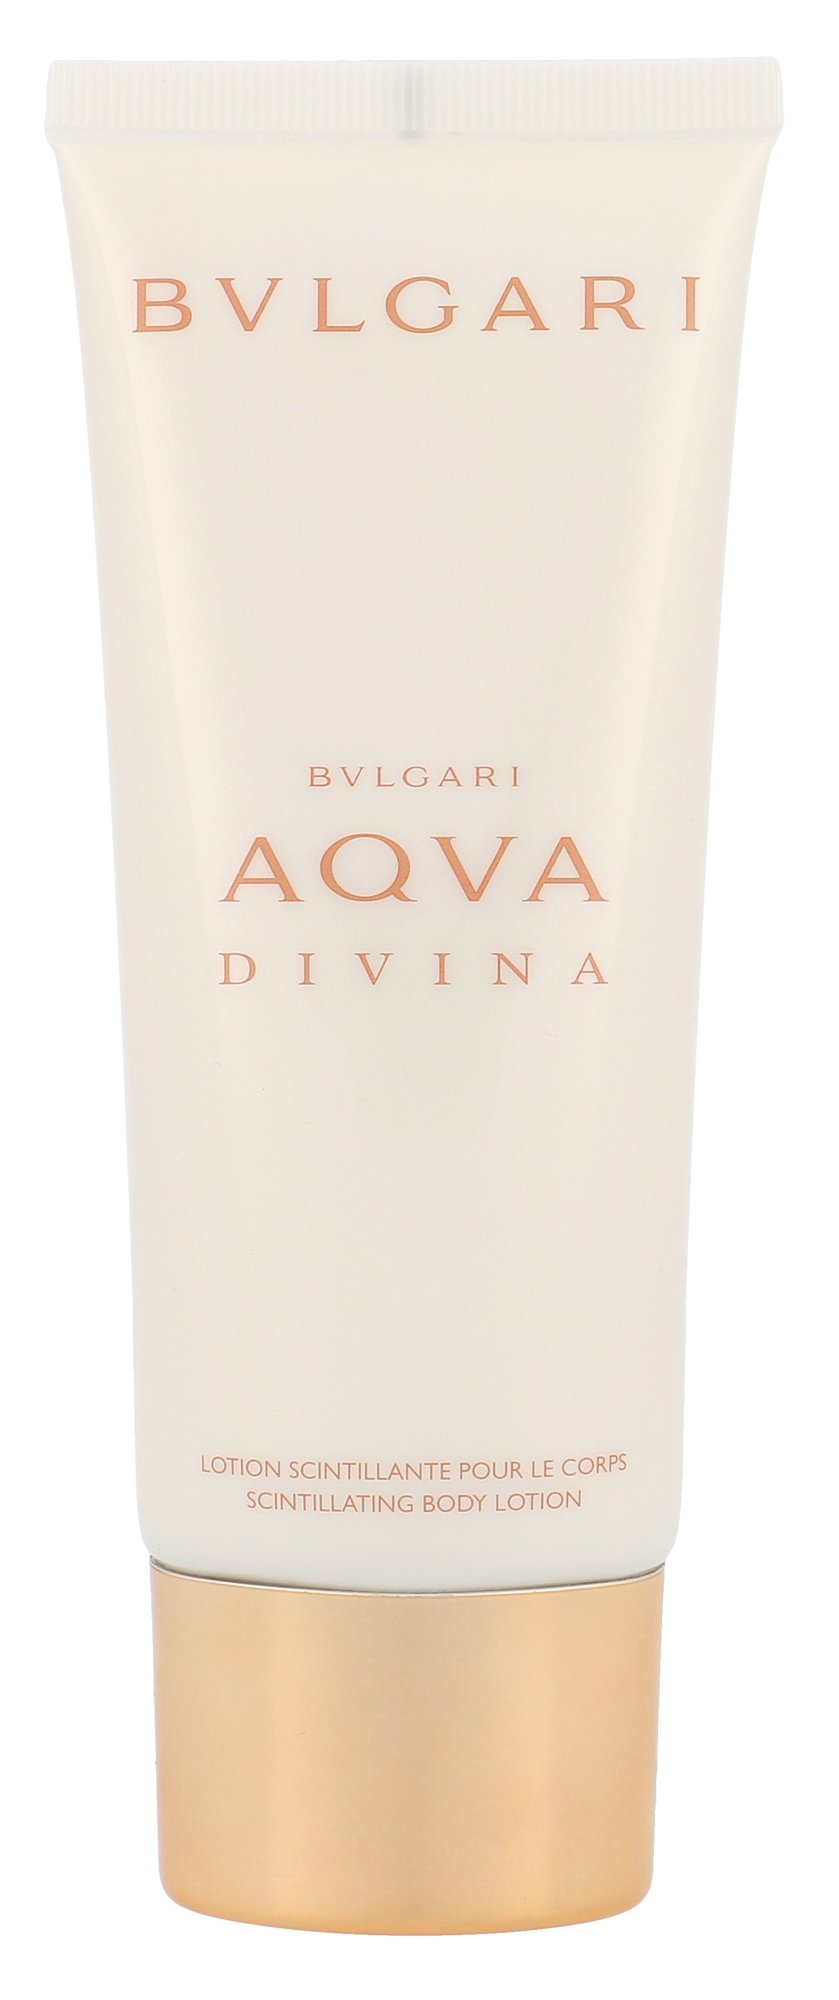 Bvlgari Aqva Divina Body lotion 100ml